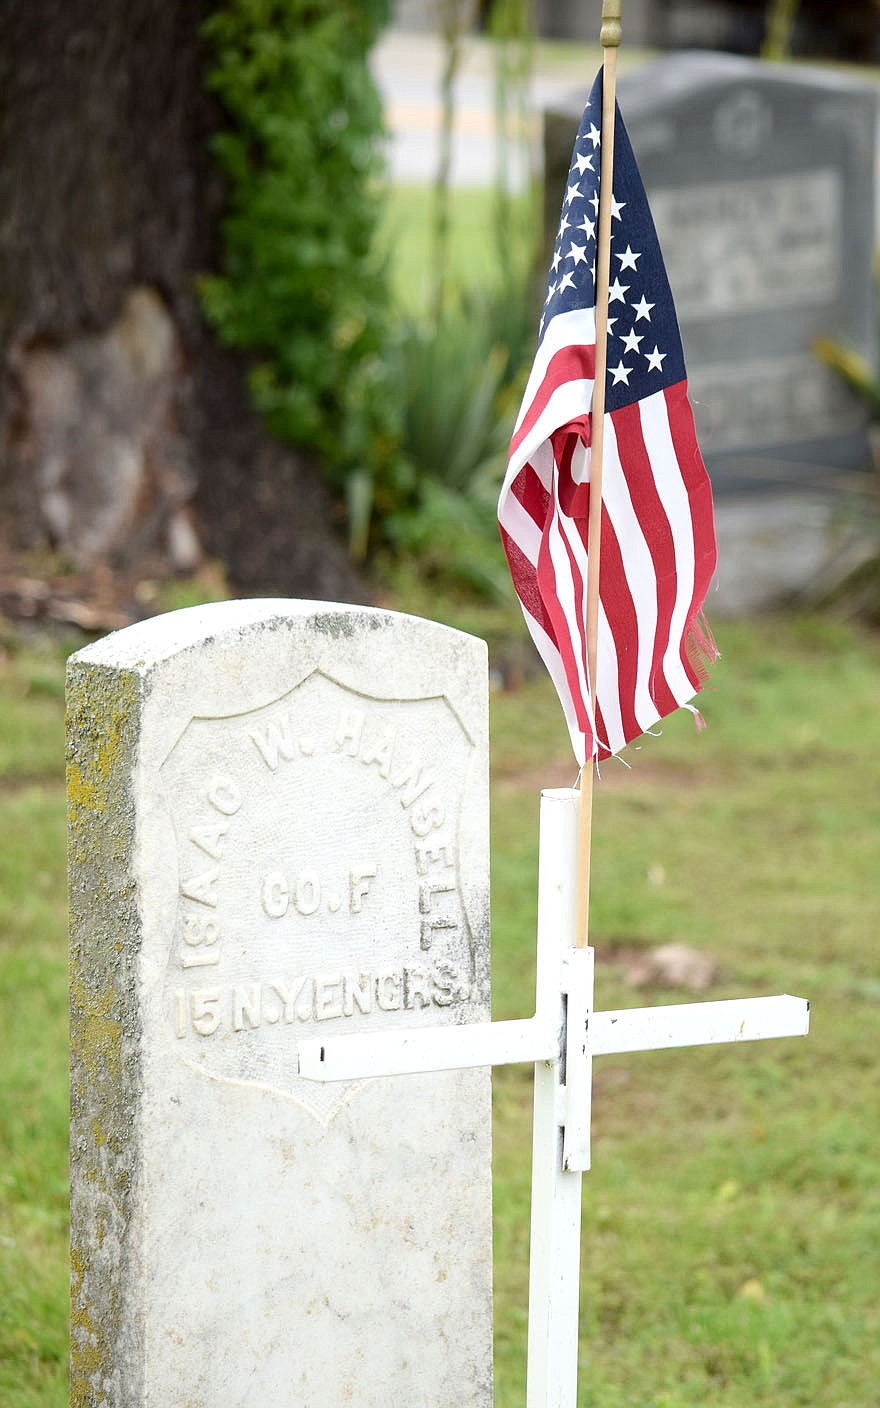 Westside Eagle Observer/MIKE ECKELS During the 2021 Memorial Day observance in Decatur Saturday morning, a cross and American flag adorns the head stone of Isaac W. Hansell, Union Army soldier with the 15th New York Engineers who died sometime during the Civil War. Hansell was one of 134 military veterans buried in the Decatur Cemetery to receive the cross and flag in remembrance of their sacrifice in defense of freedom.